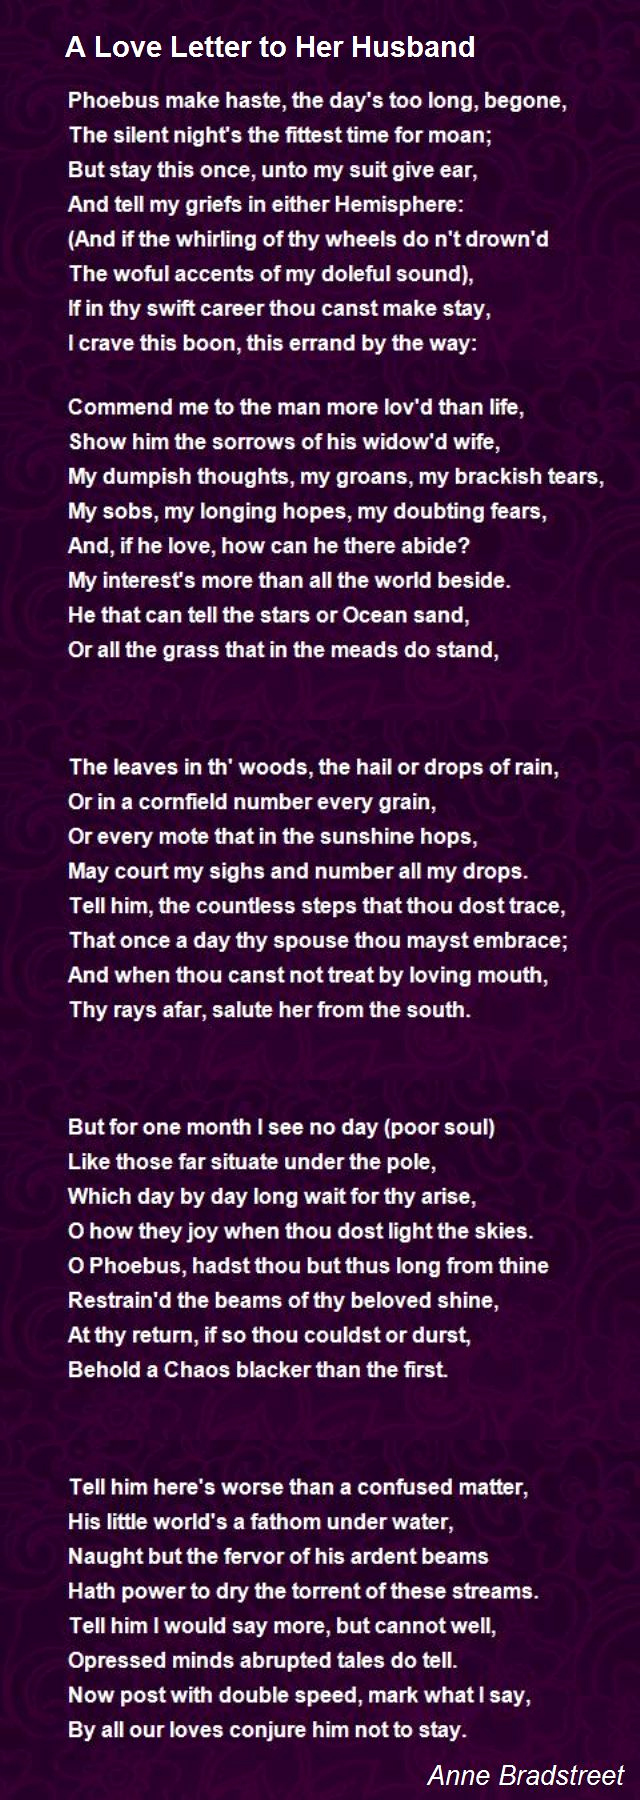 Letter to My Husband Fresh A Love Letter to Her Husband Poem by Anne Bradstreet